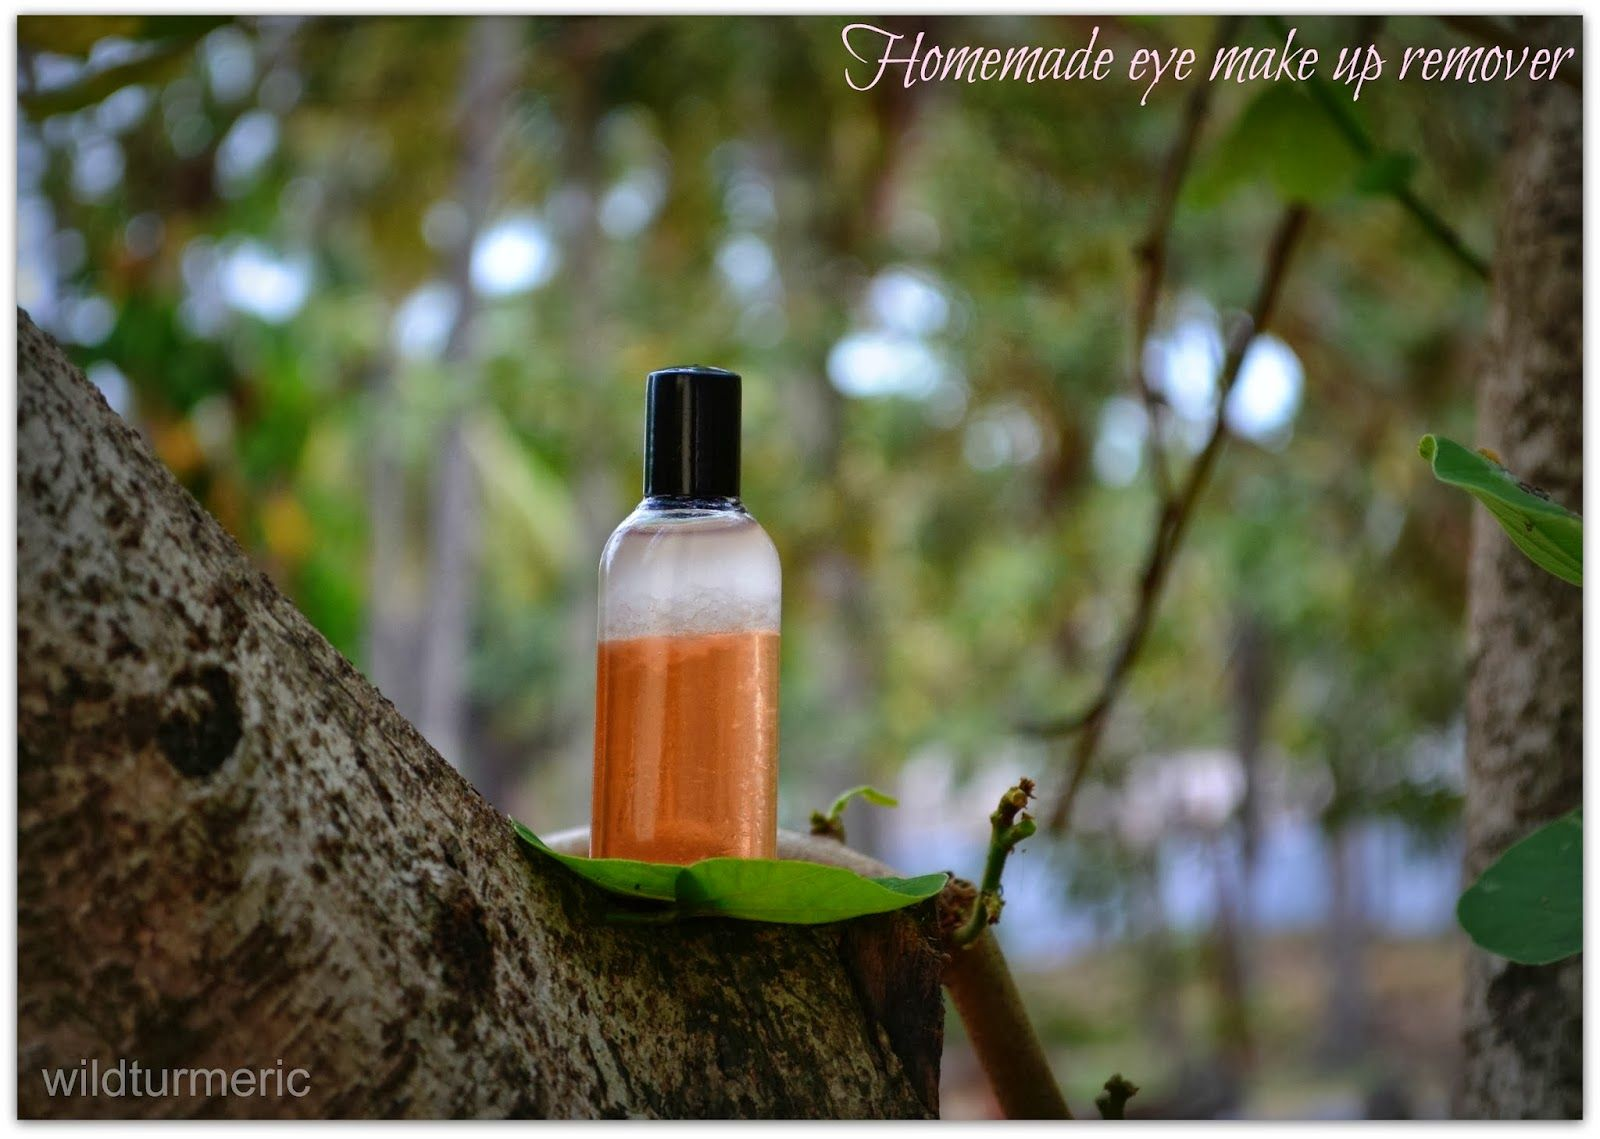 DIY Homemade Natural Eye Makeup Remover (With images